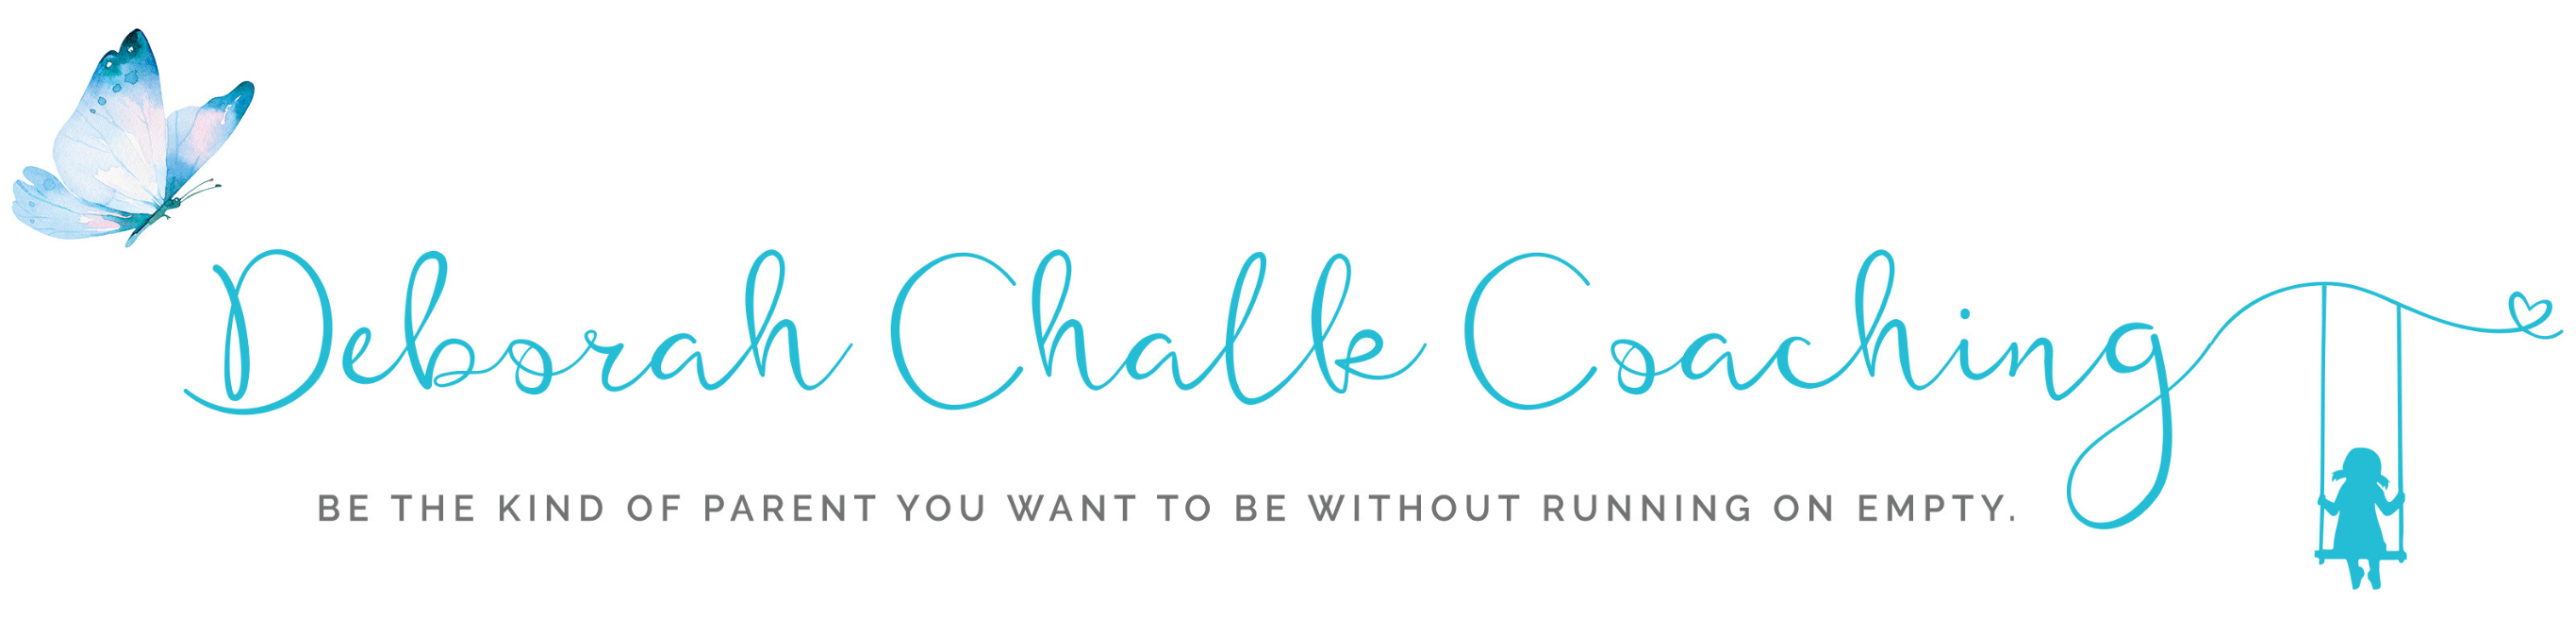 Deborah Chalk Coaching - Be the kind of parent you want to be without running on empty